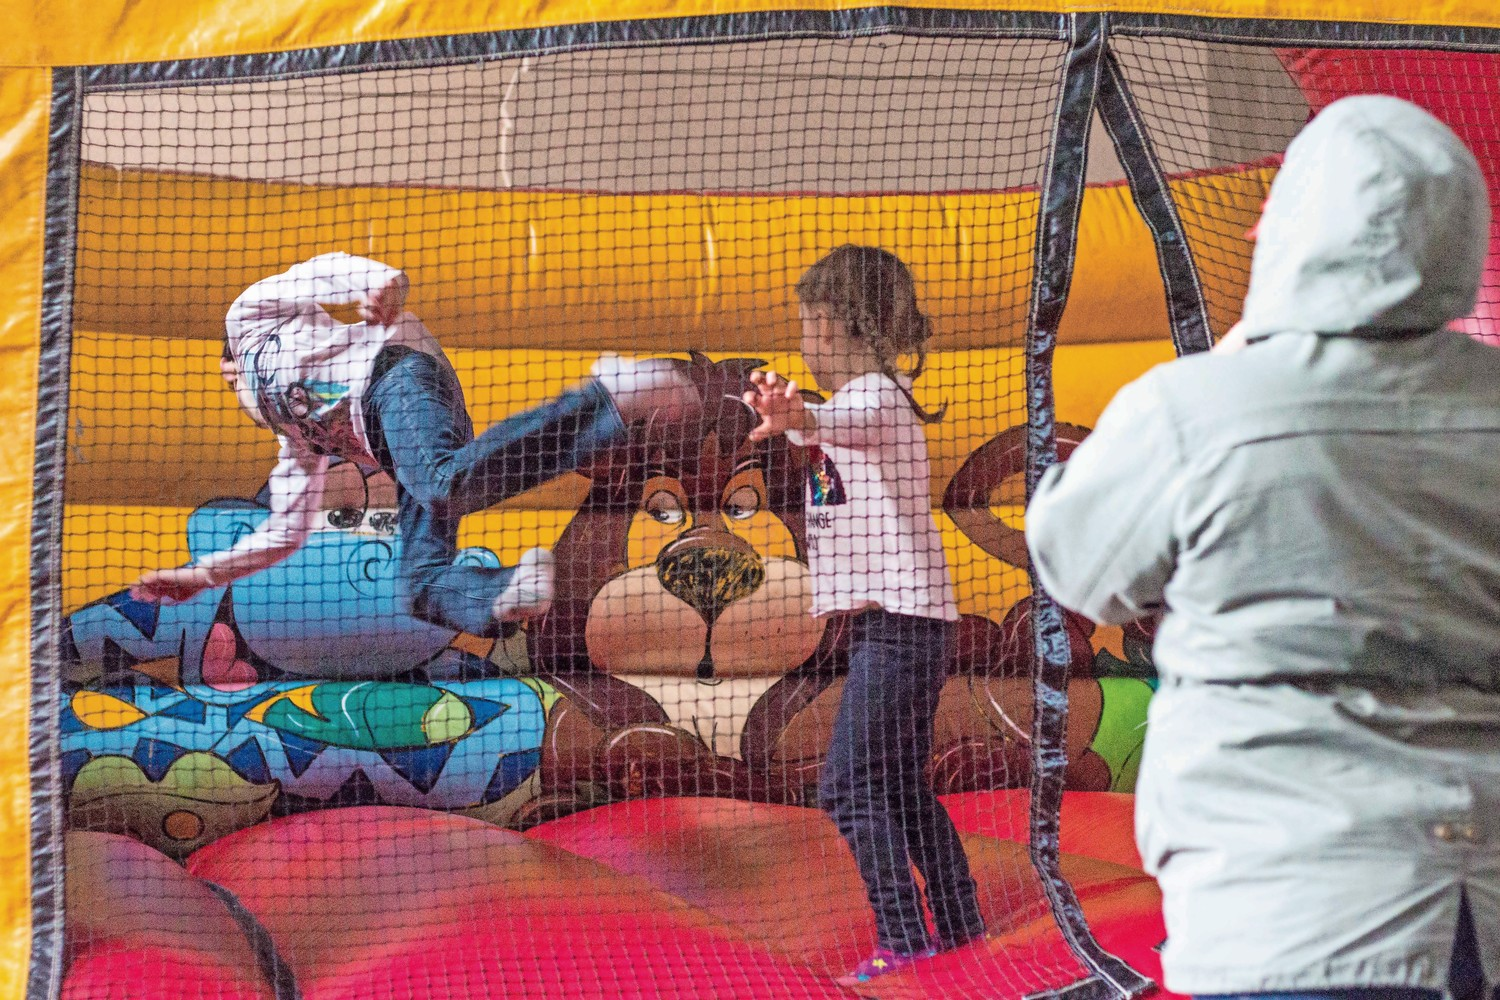 A young boy does a flip in a bounce house during the Bronx Israeli Independence Festival at the Hebrew Institute of Riverdale.